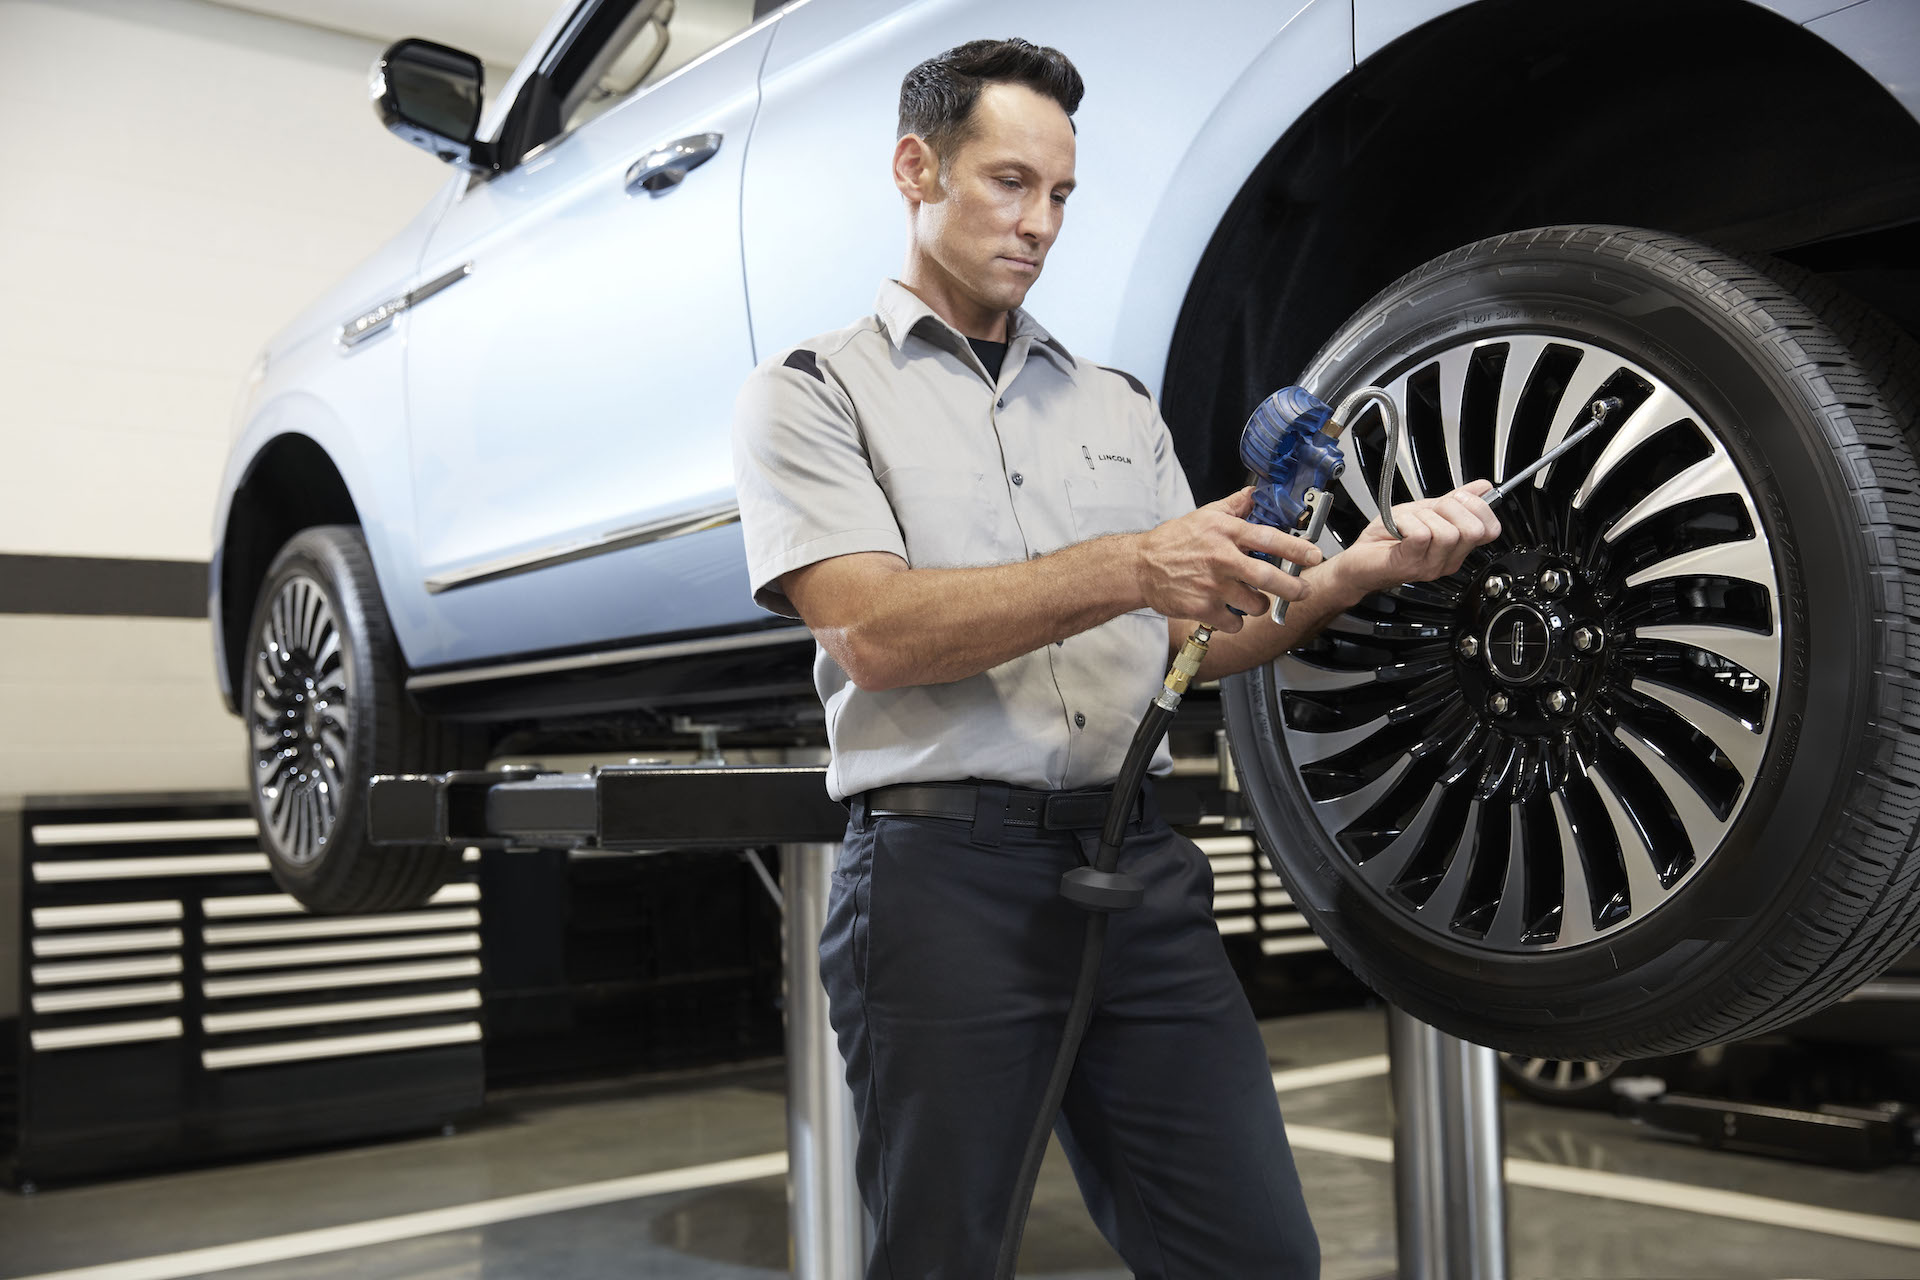 How to check your tires' health at Lincoln of New Bern |Lincoln service technician checking tire pressure